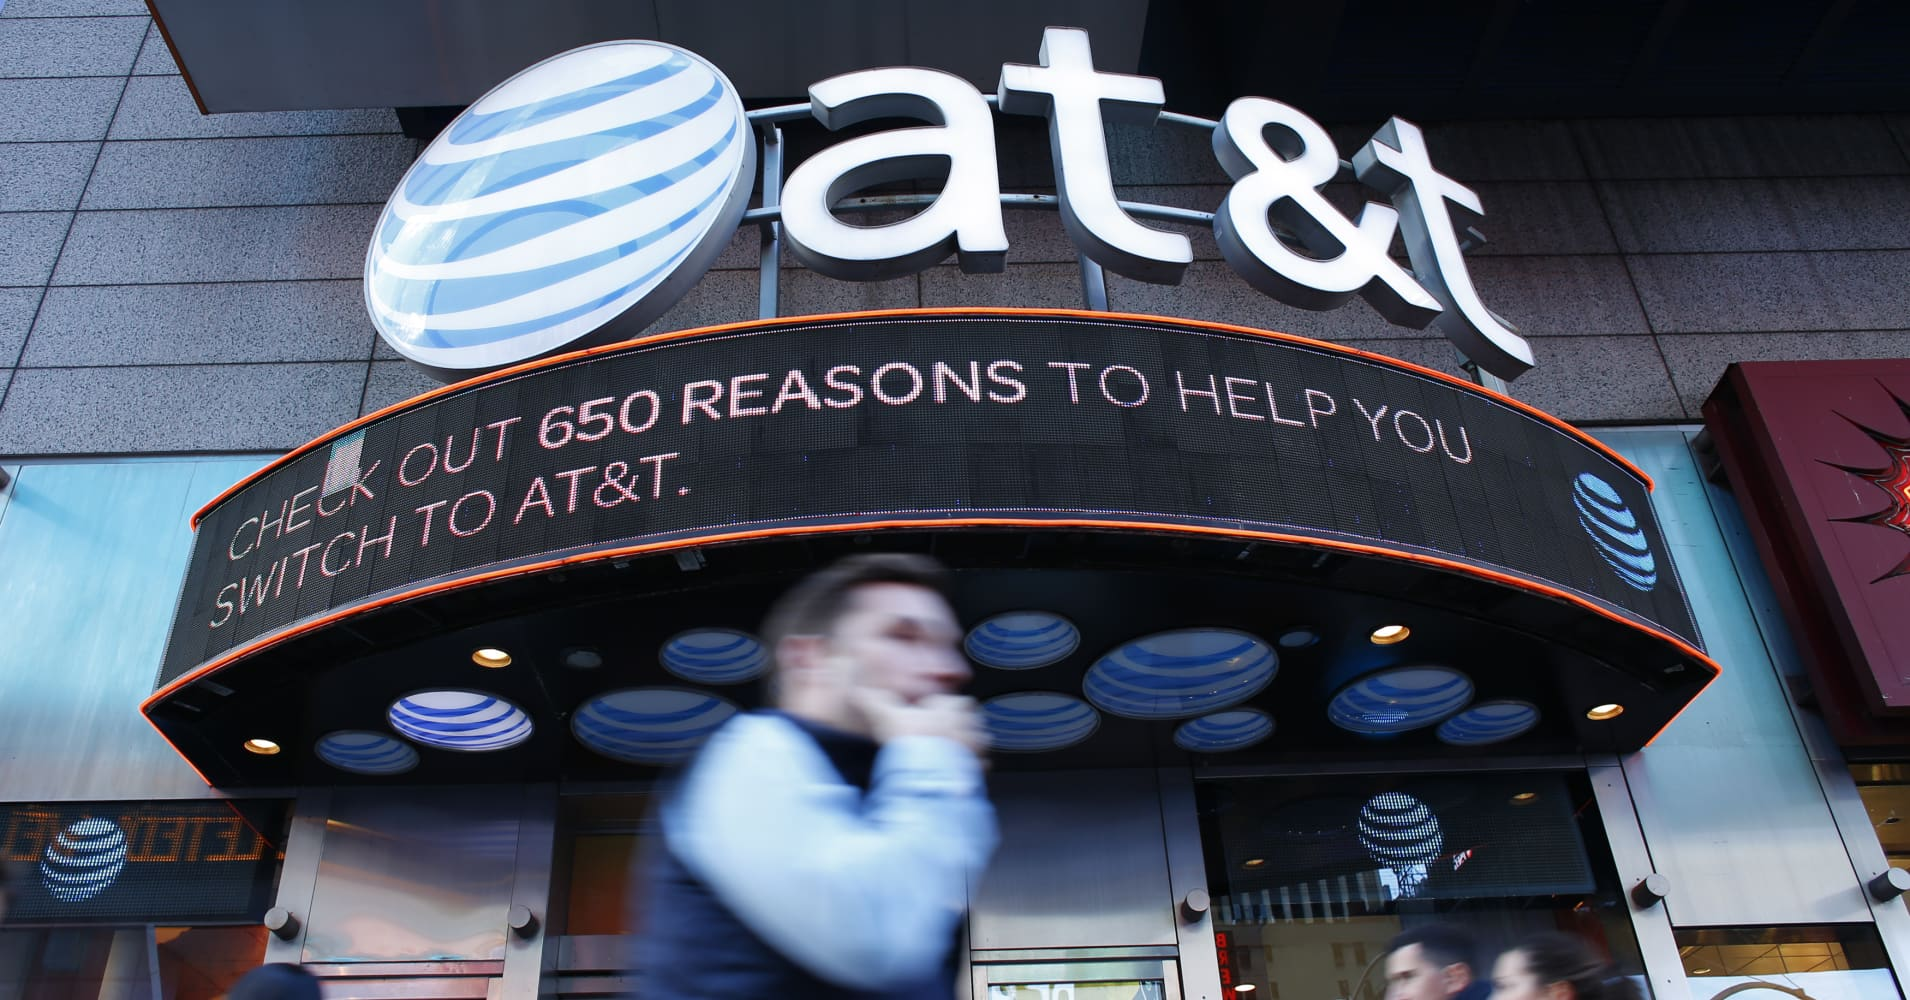 Att time warner merger brings new challenge for telecom stocks people walk past an att store in new york buycottarizona